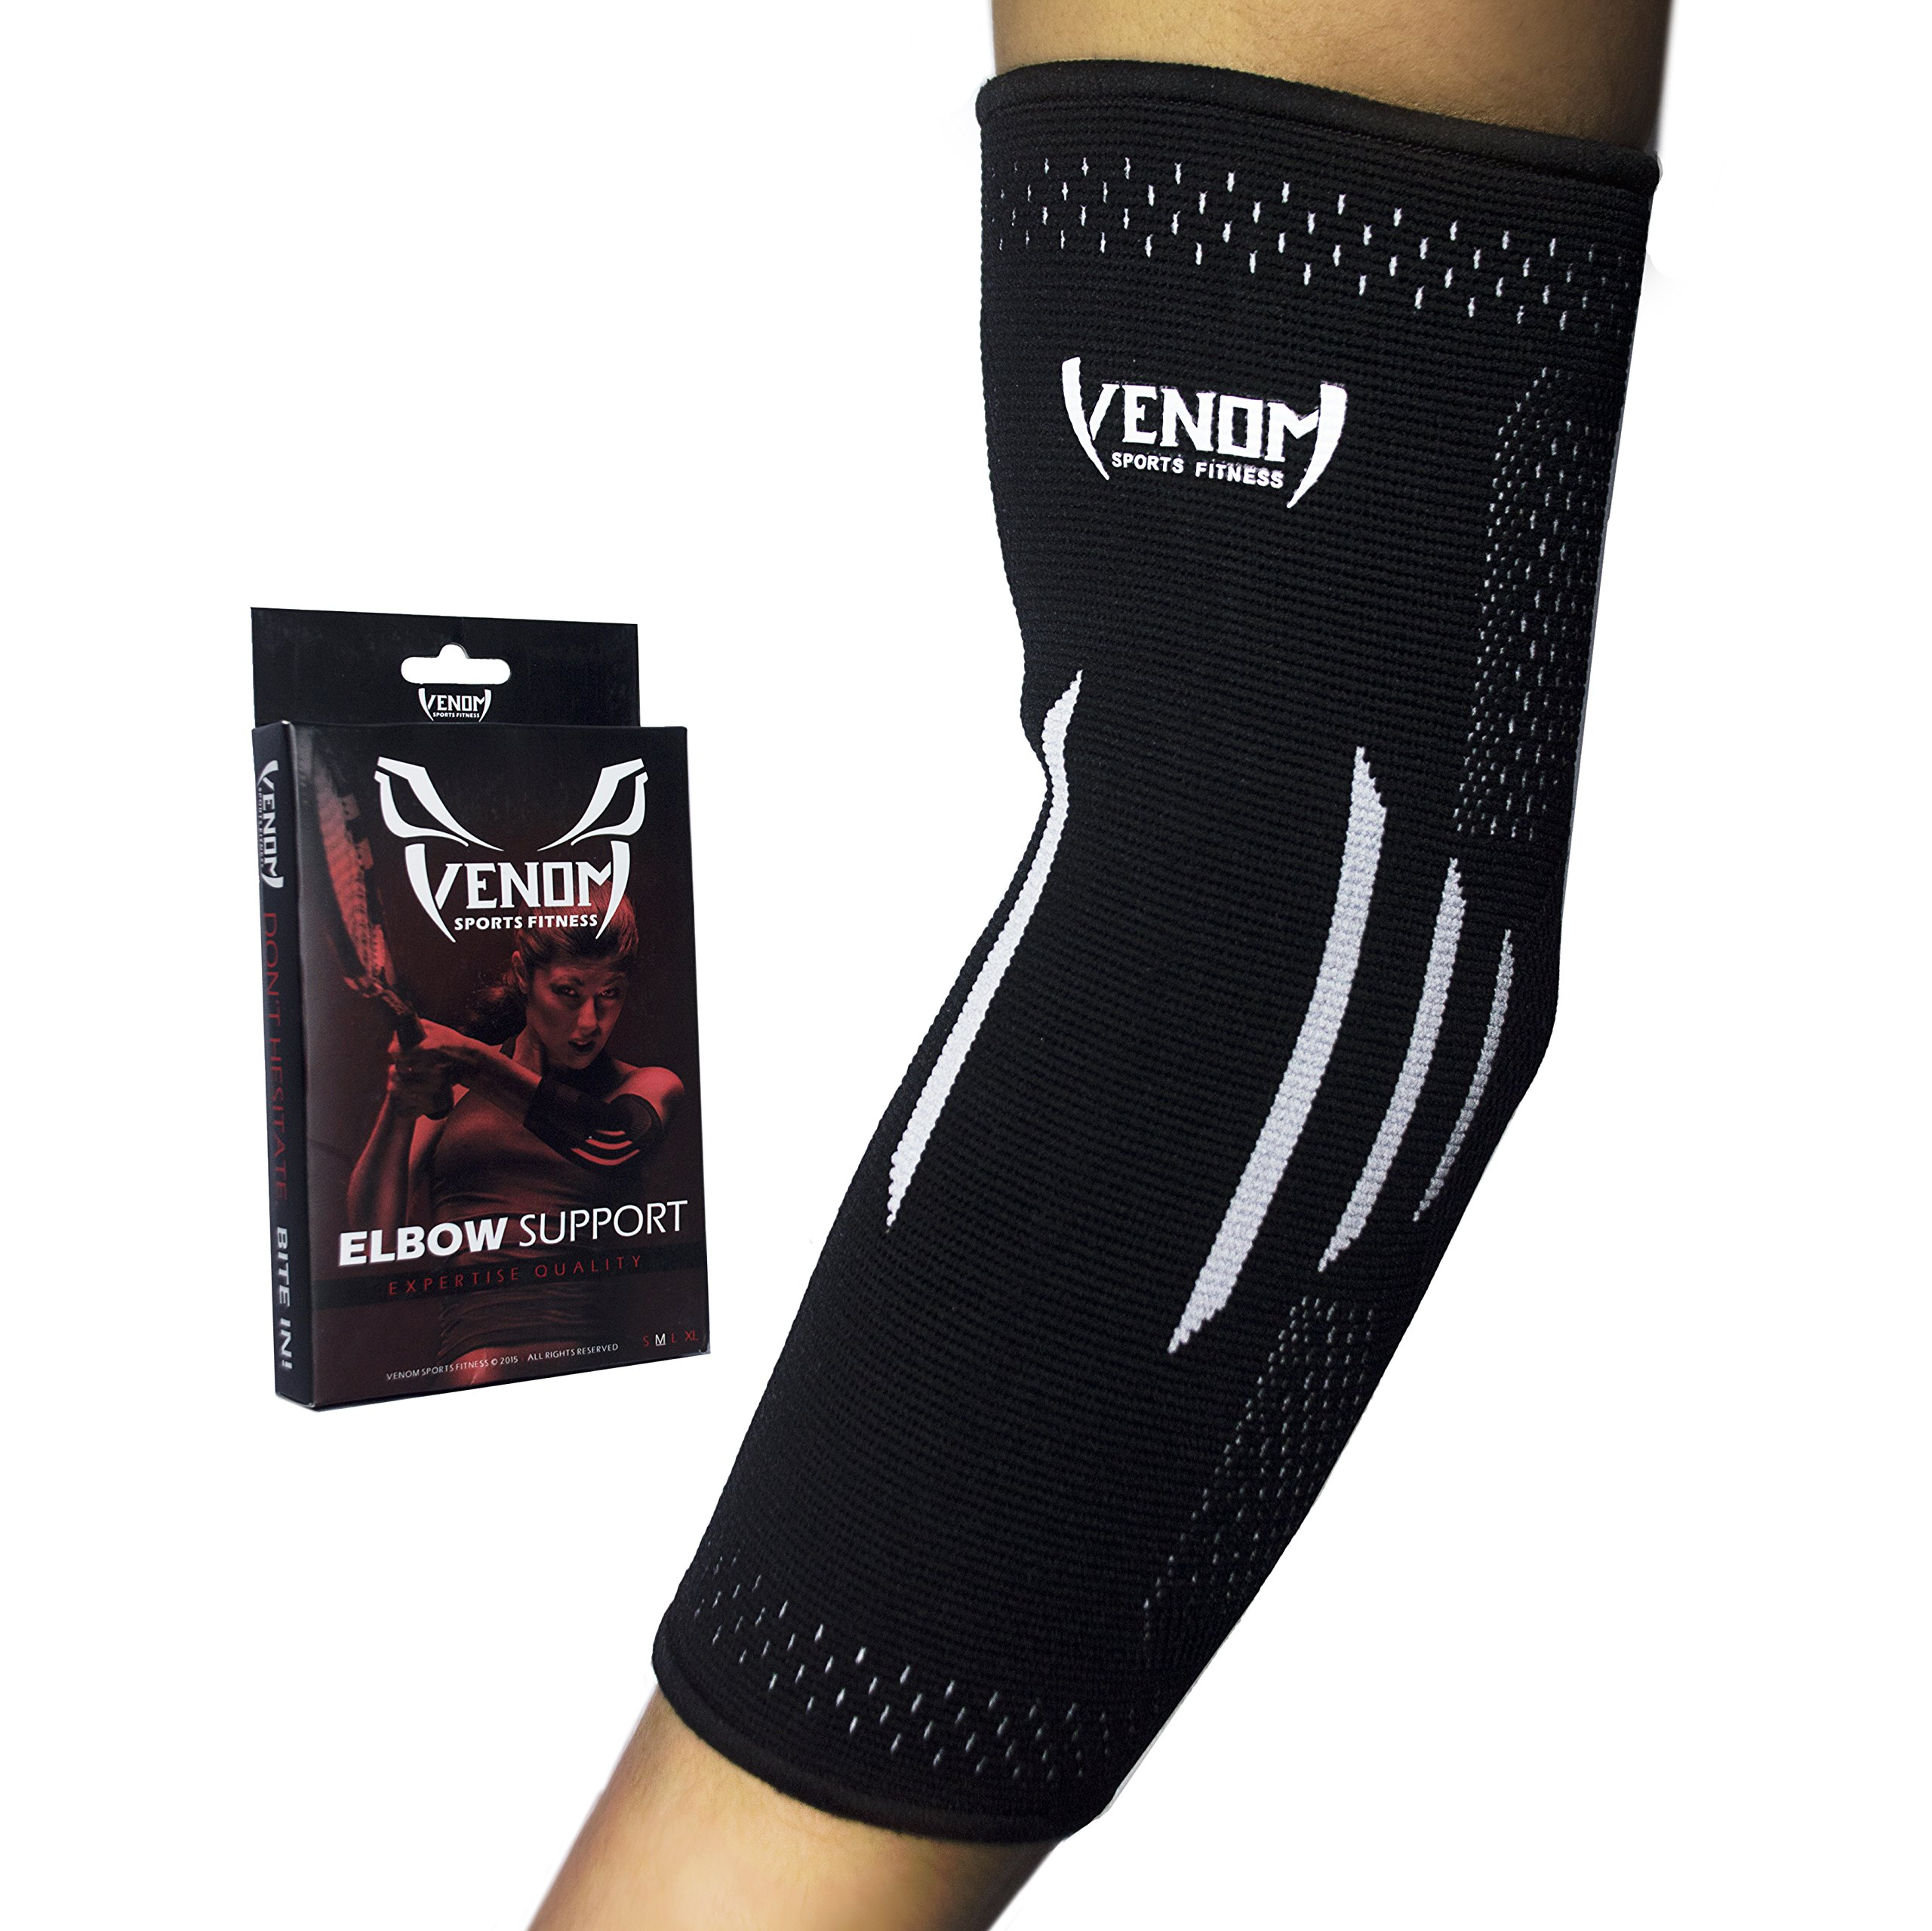 Venom Elbow Brace Compression Sleeve - Elastic Support for Tendonitis Pain, Tennis Elbow, Golfer's Elbow, Arthritis, Bursitis, Basketball, Baseball, Football, Golf, Lifting, Sports, Men, Women (Large)